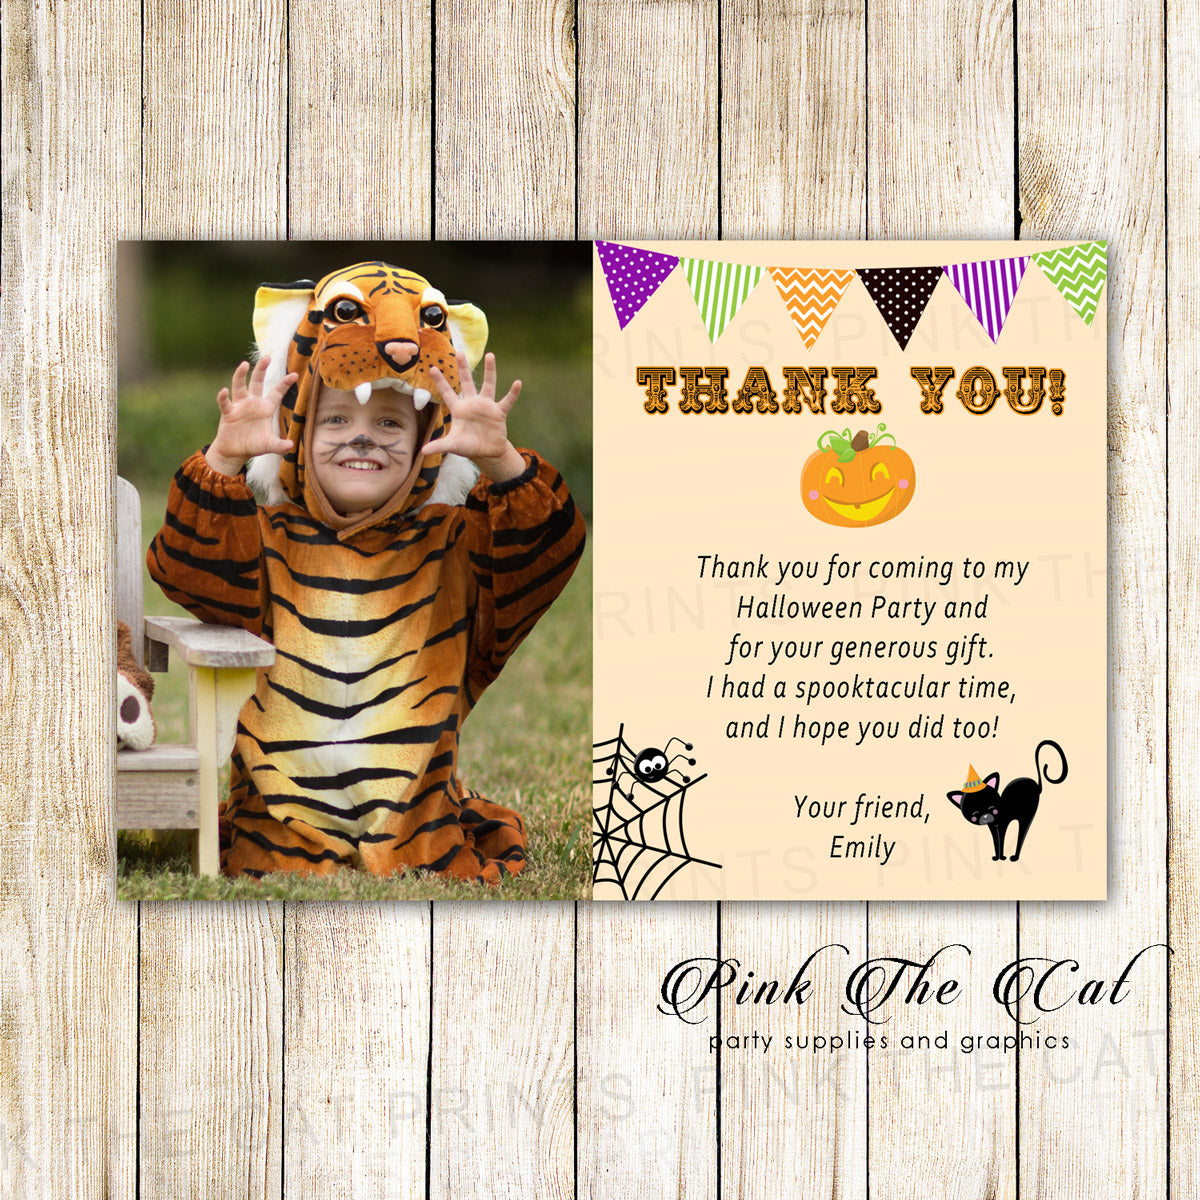 30 Thank You Cards Halloween Kids Birthday Photo Pink The Cat